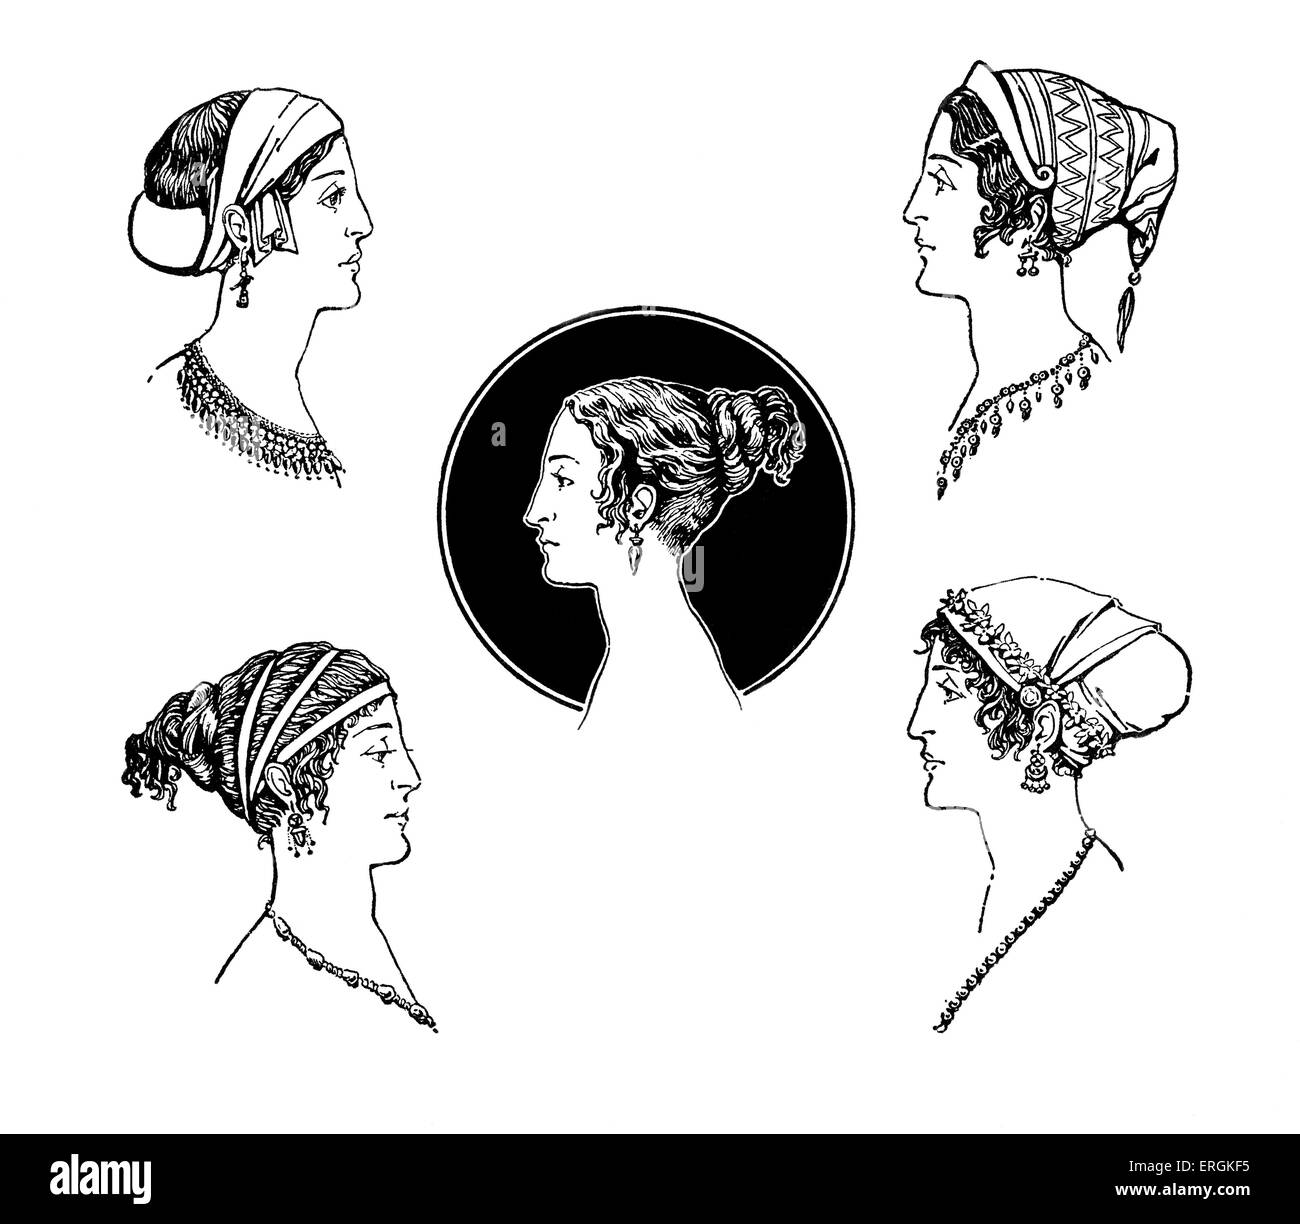 Ancient Greek hairstyles. Example of Ancient Greek female hairstyles and headdresses in 5th Century BC Greece. Herbert - Stock Image